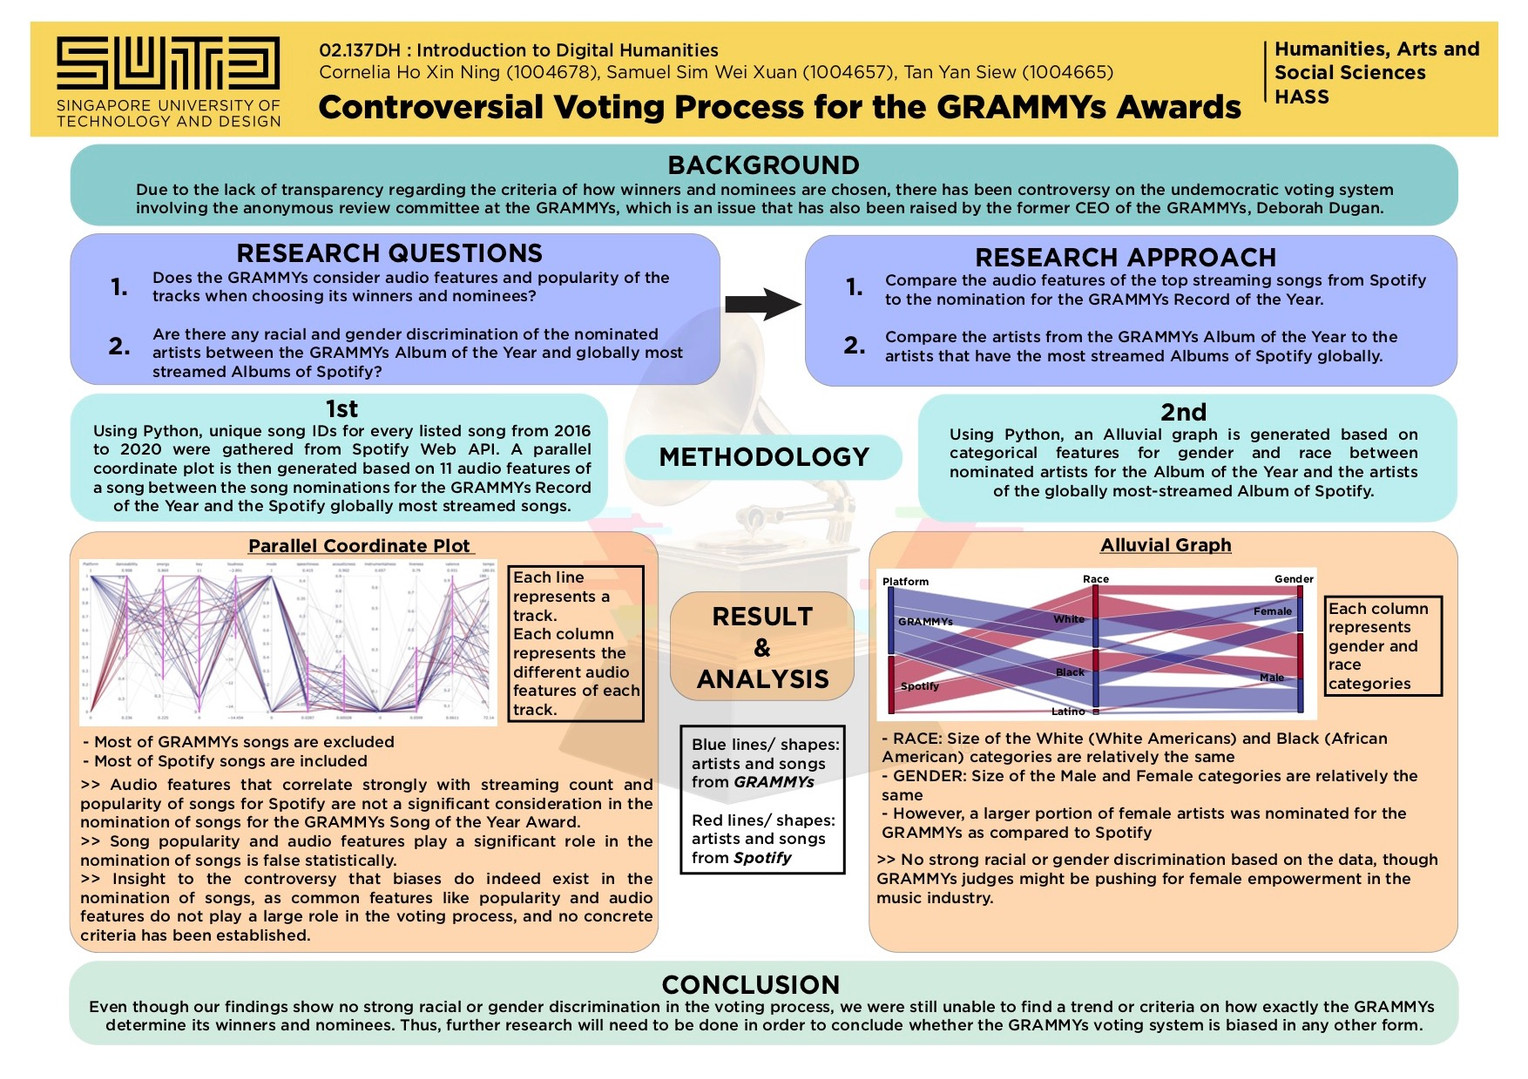 Controversial Voting Process for the GRAMMY Awards